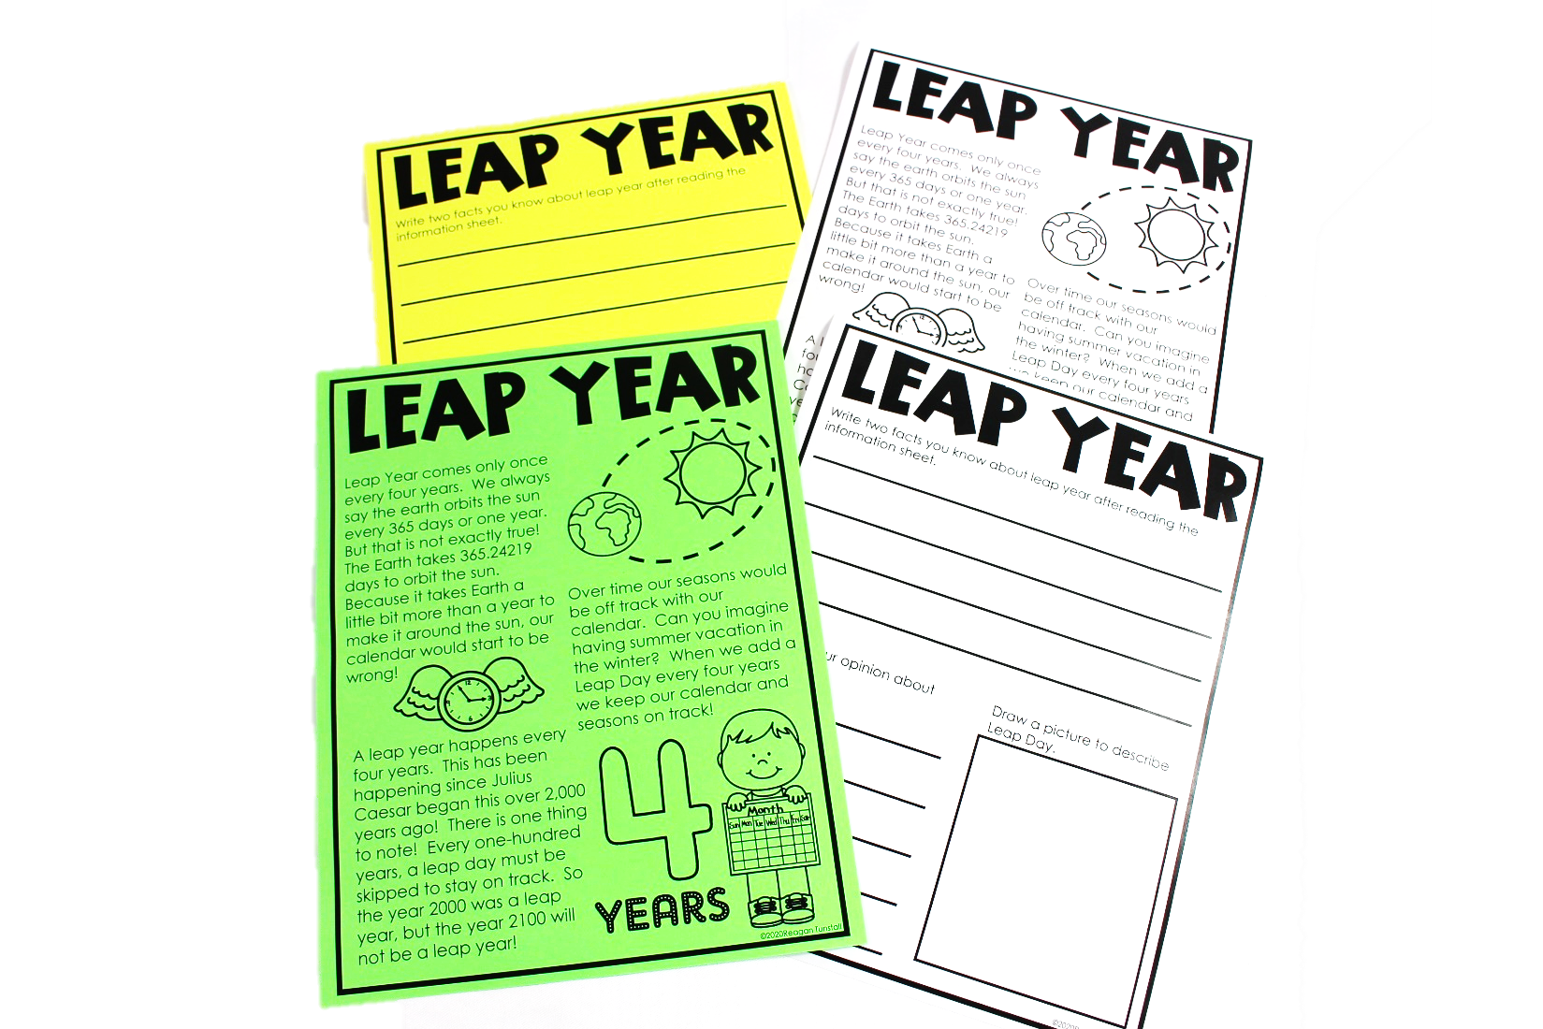 an information sheet which can be used in any way that fits your learners! This can be used for a close read activity or to simply read and share the information with your class about why leap day has come to be.